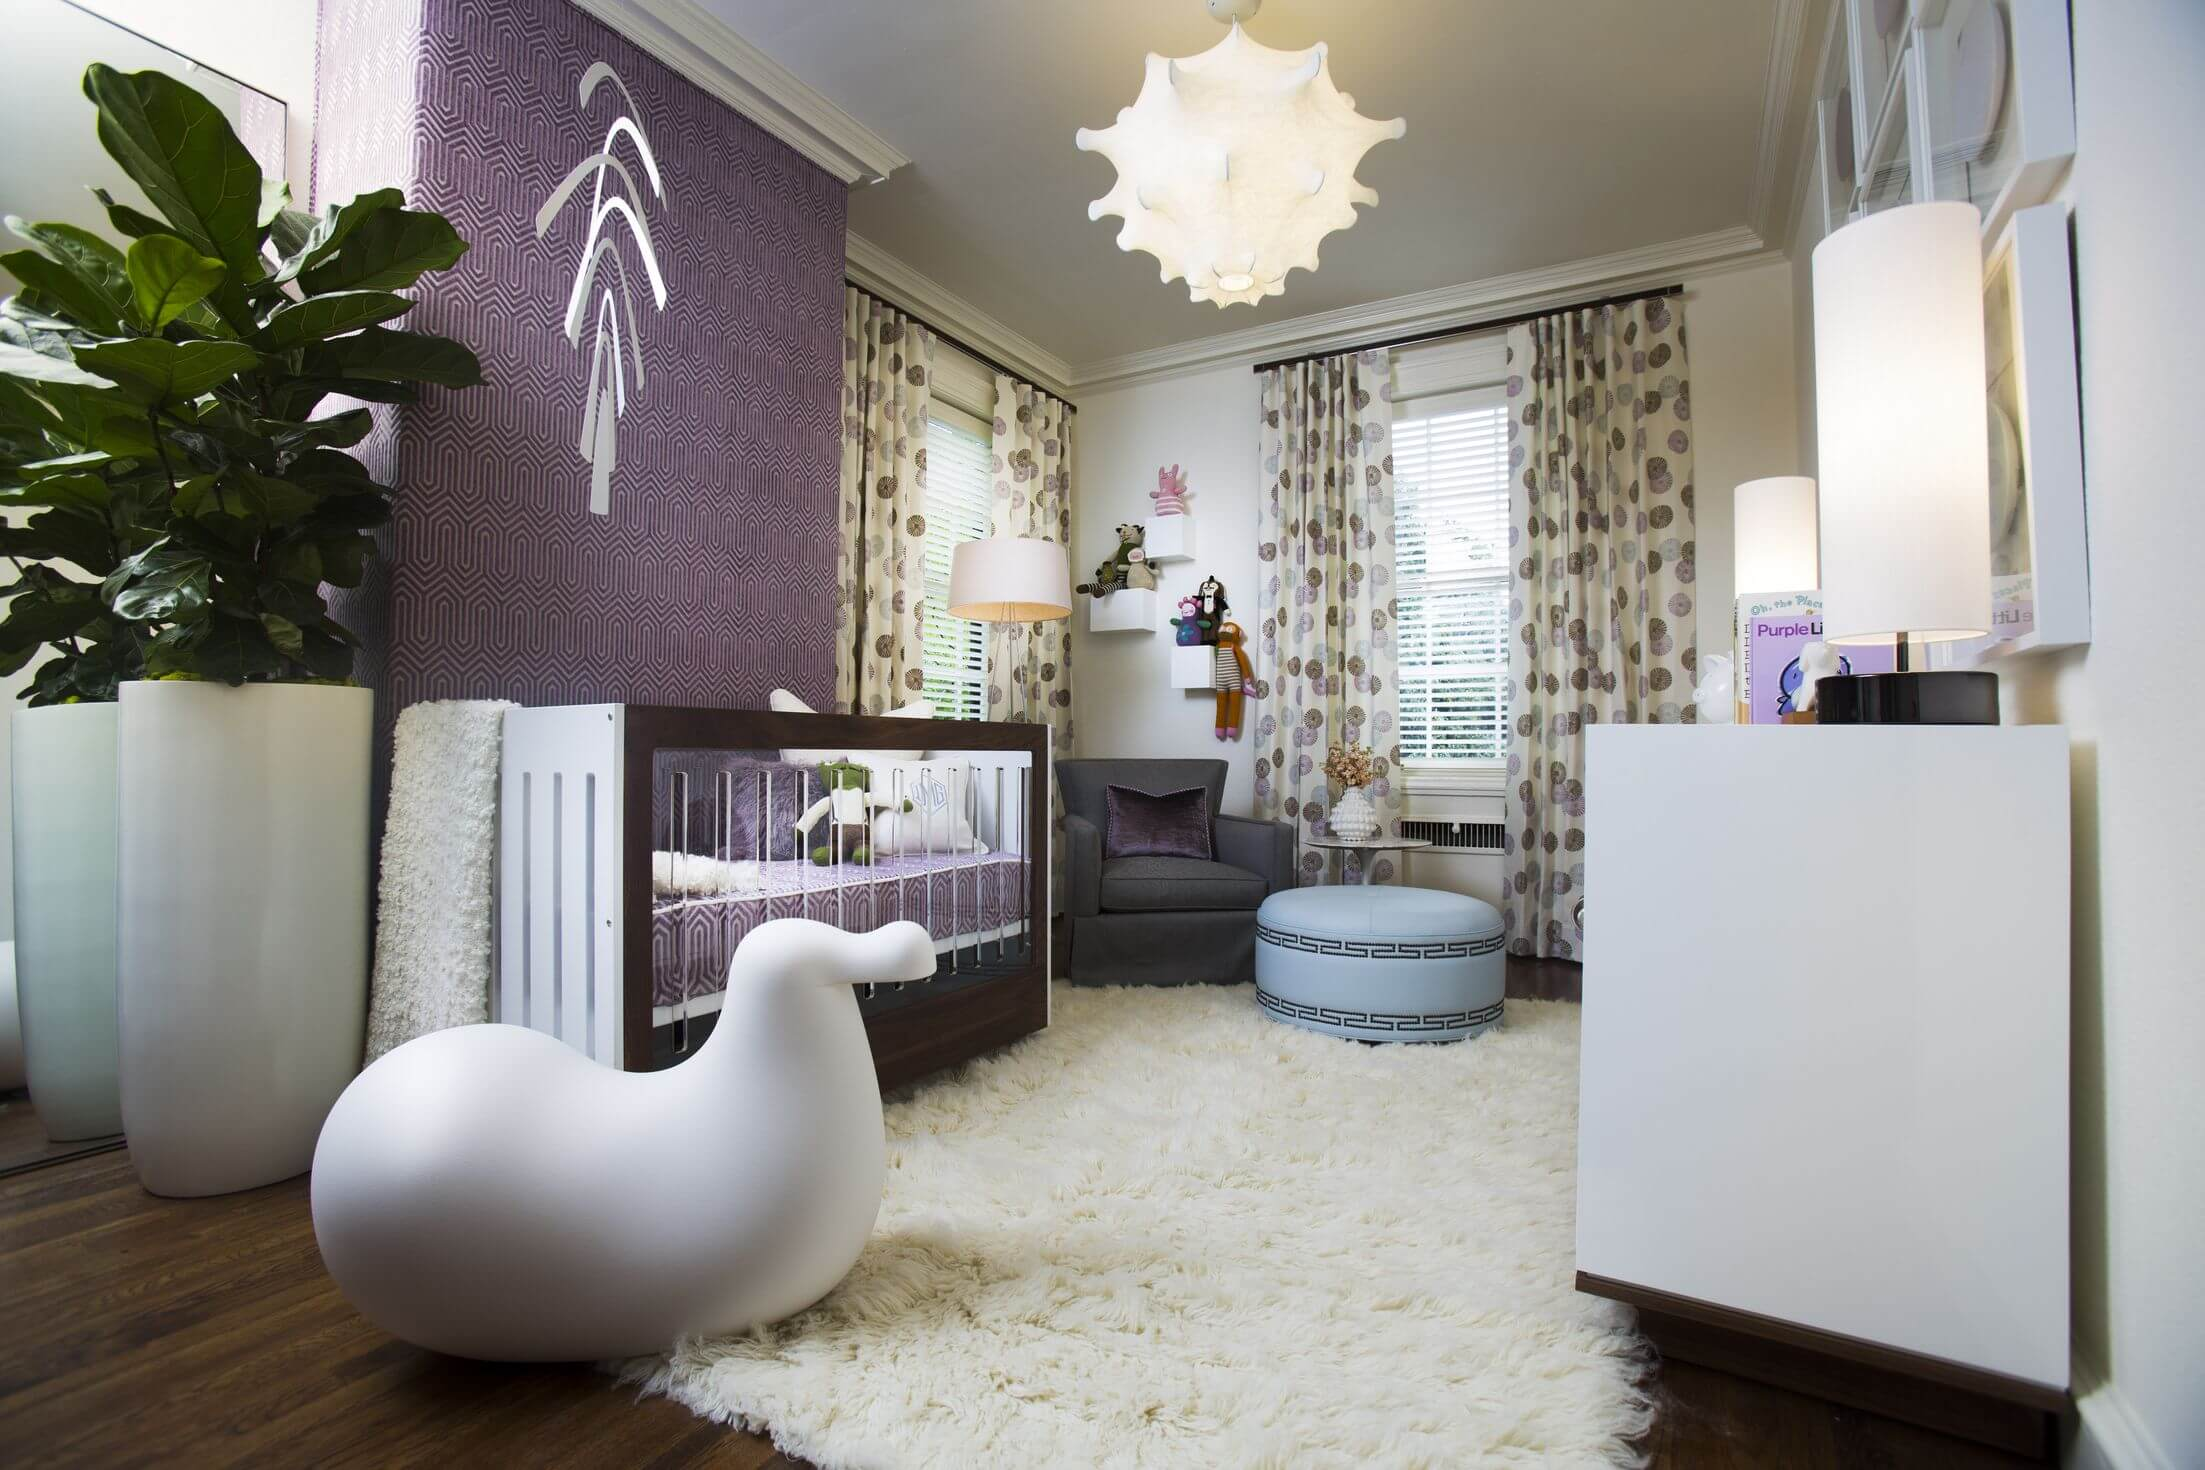 purple wall design and matching bedding accent this mostly white nursery featuring fur rug over